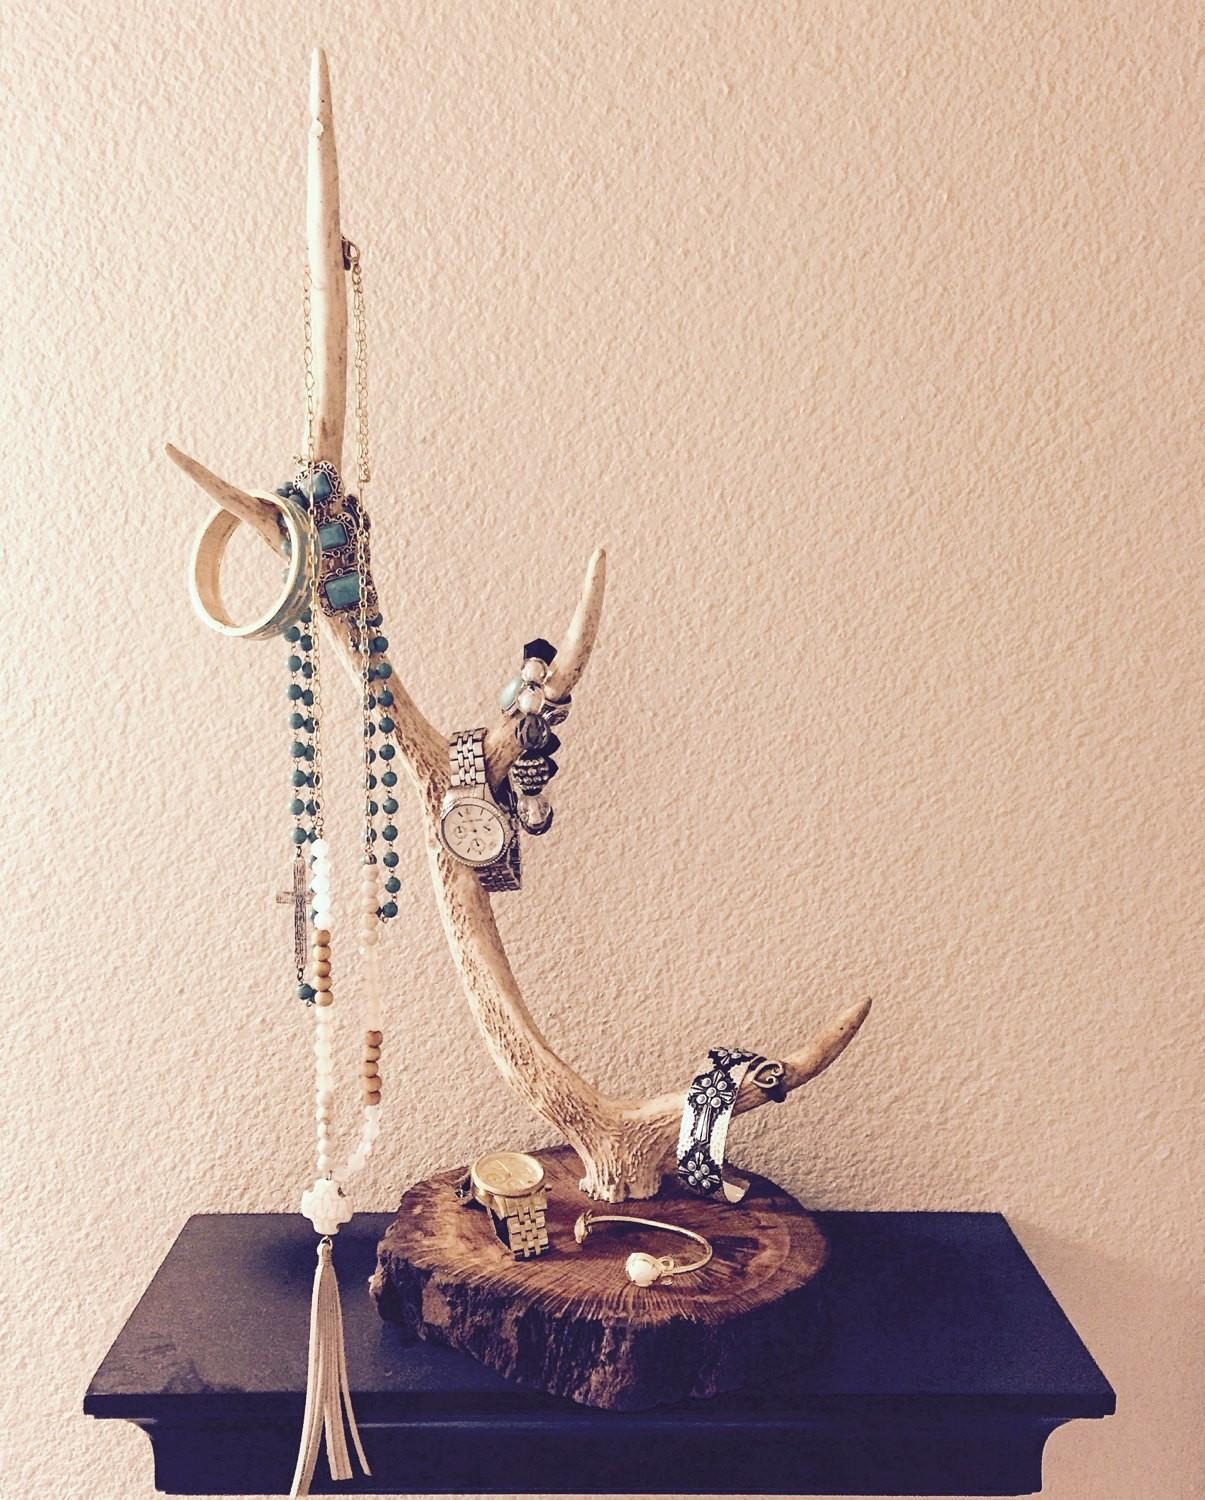 Antler Jewelry Holder Sika